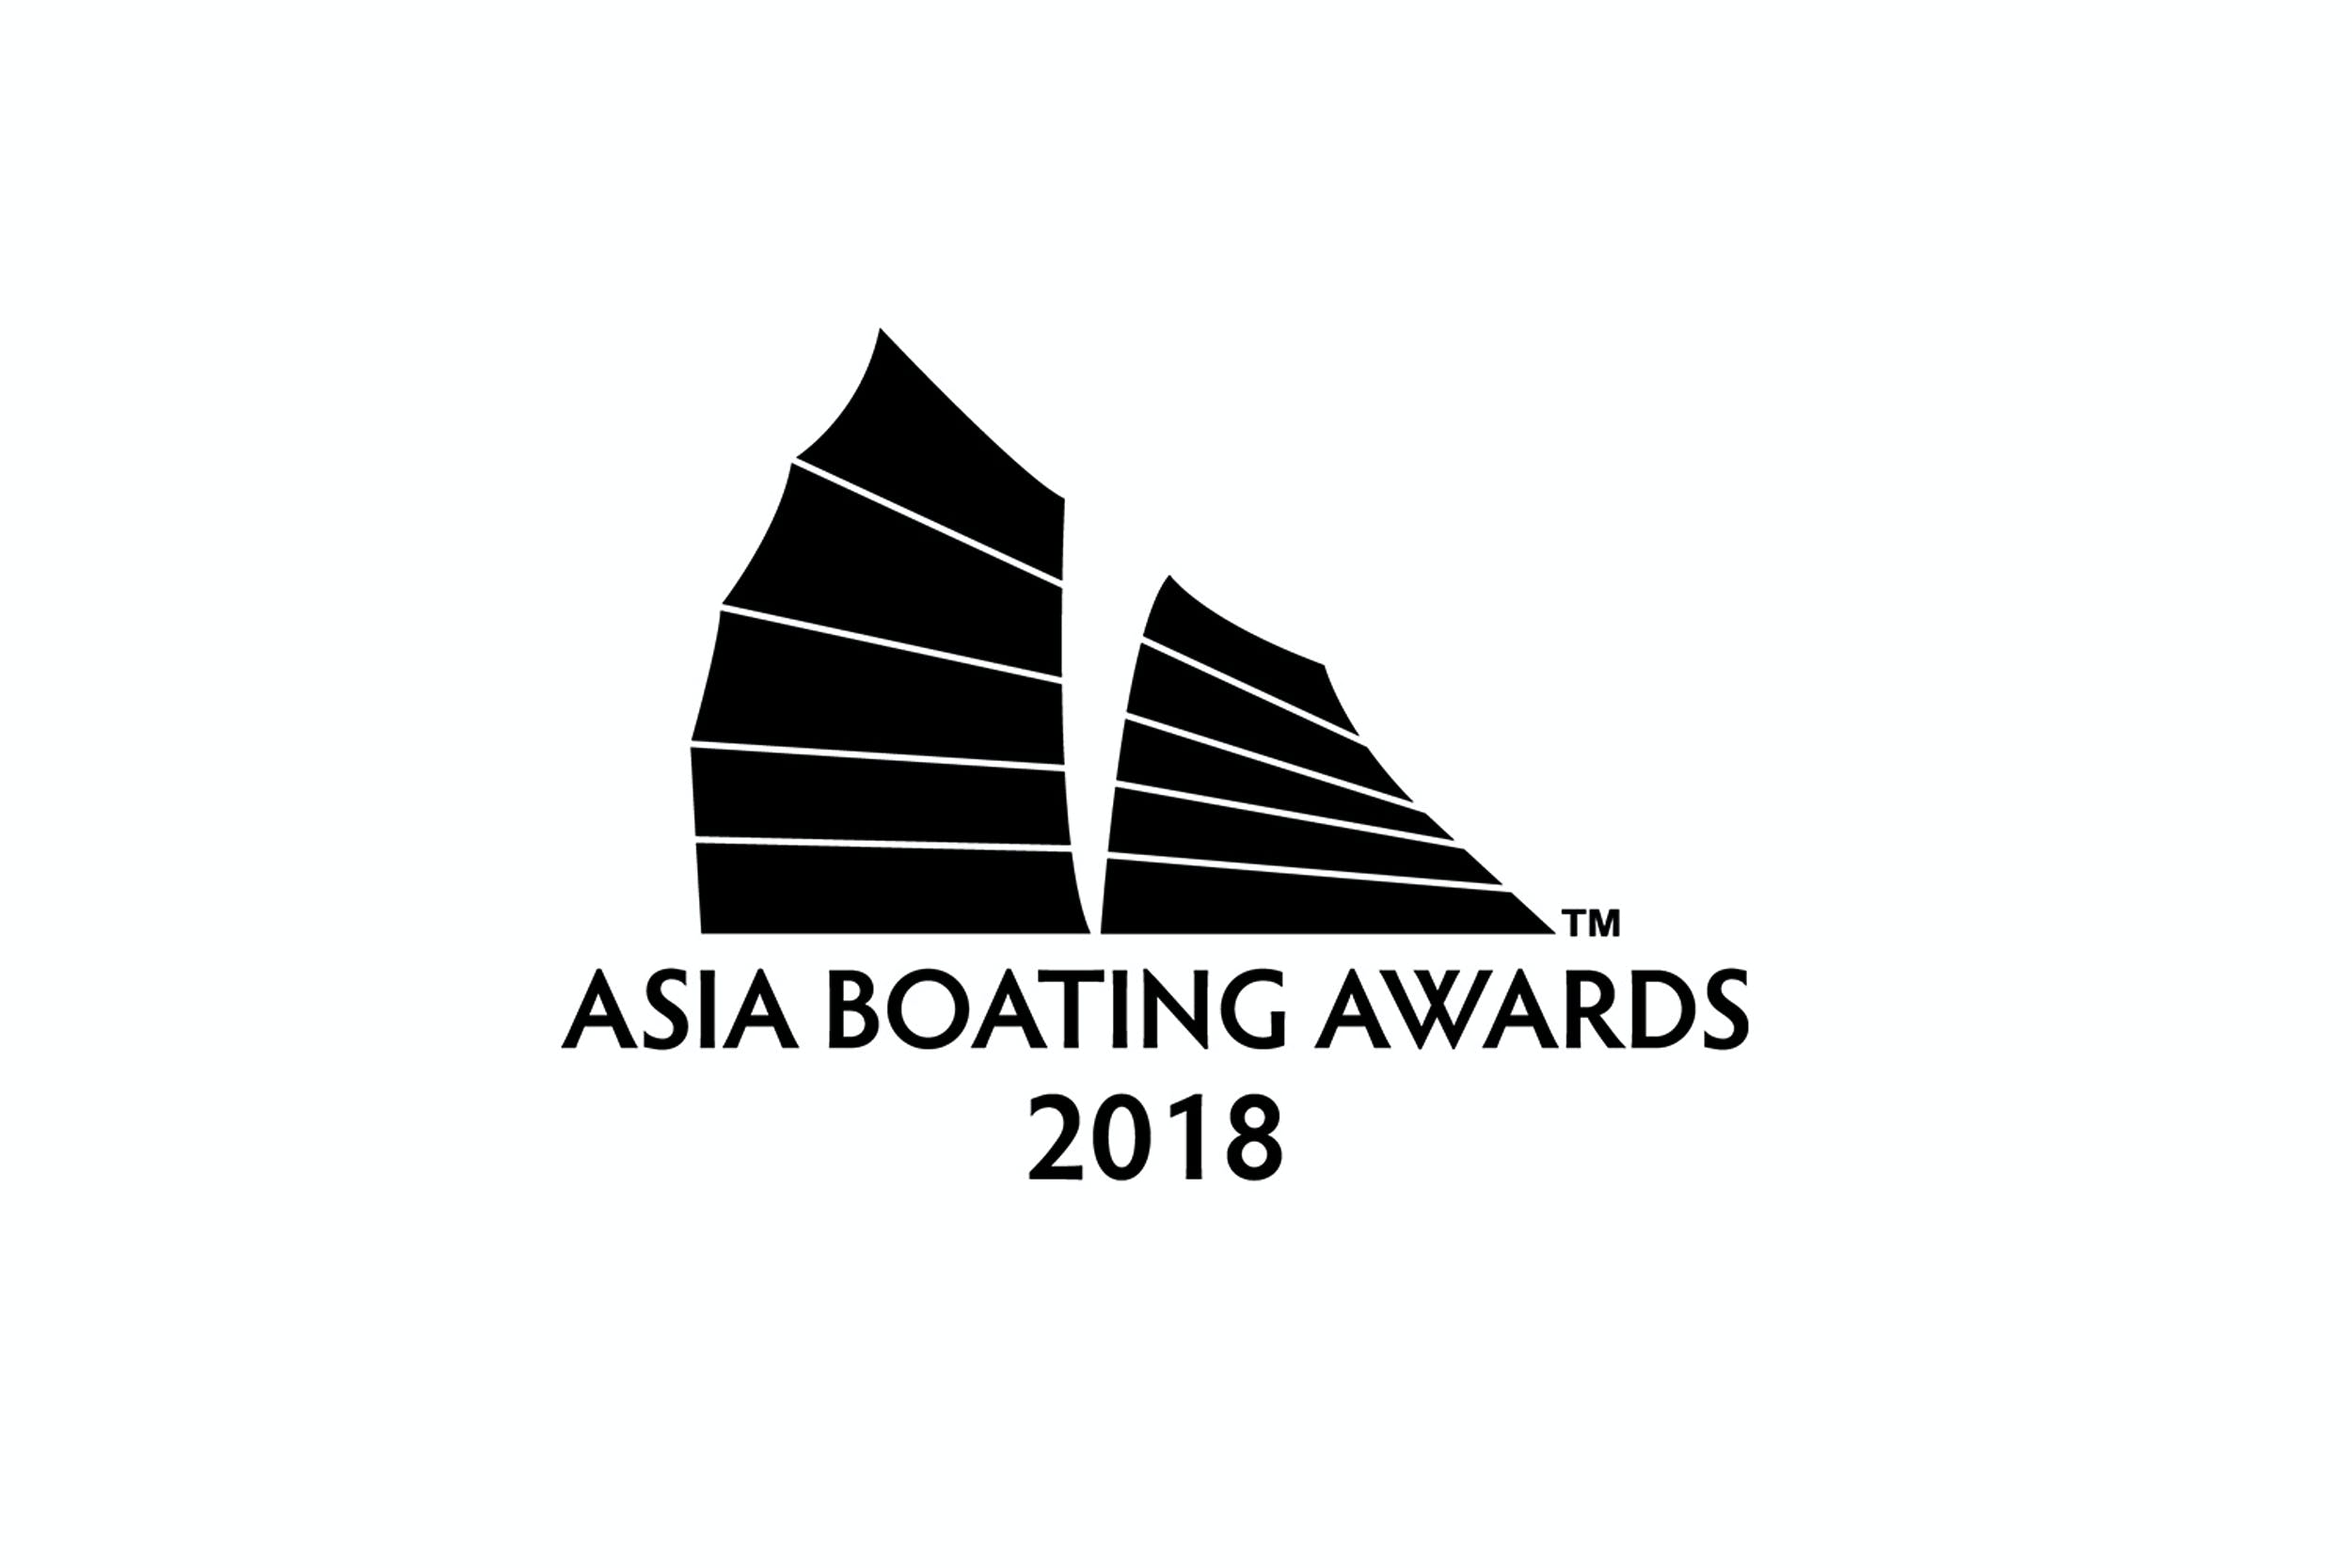 LILI winner at the Asia Boating Awards 2018